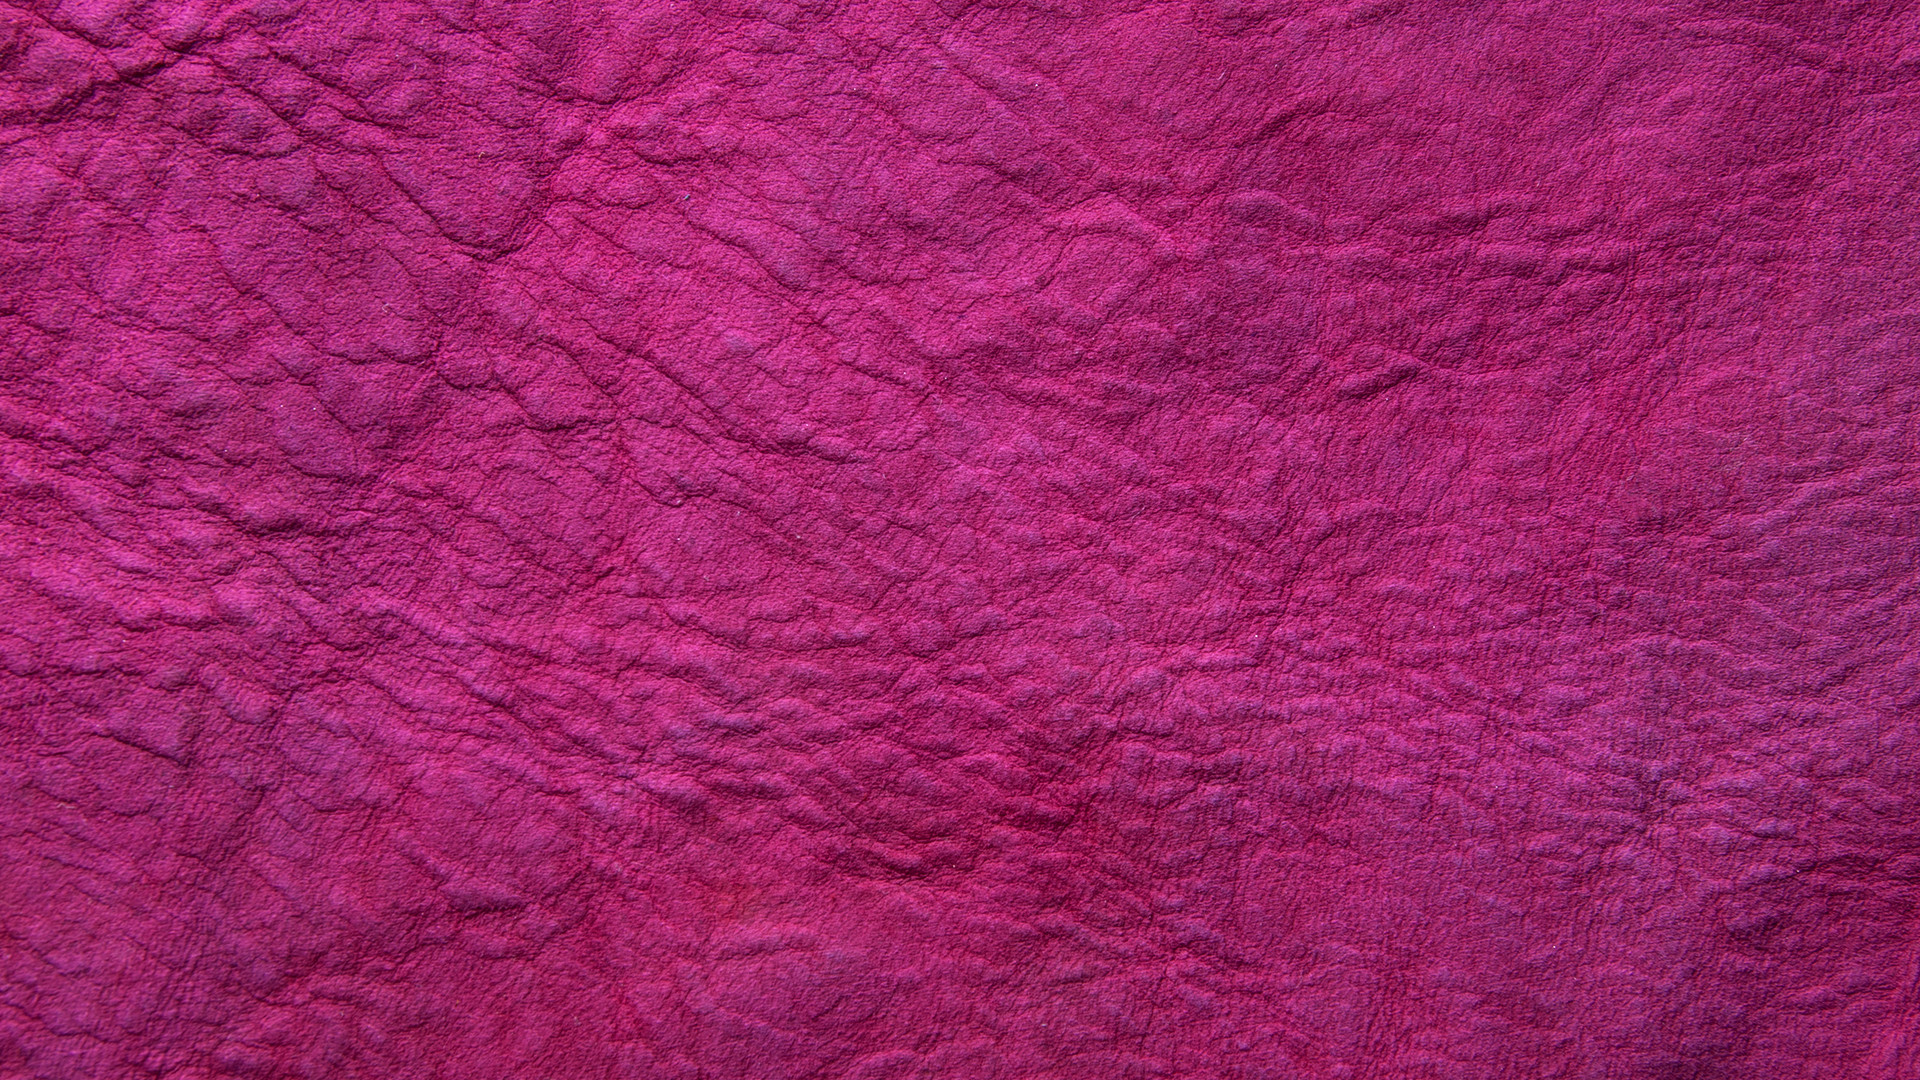 Pink Wrinkled Soft Leather Texture HD